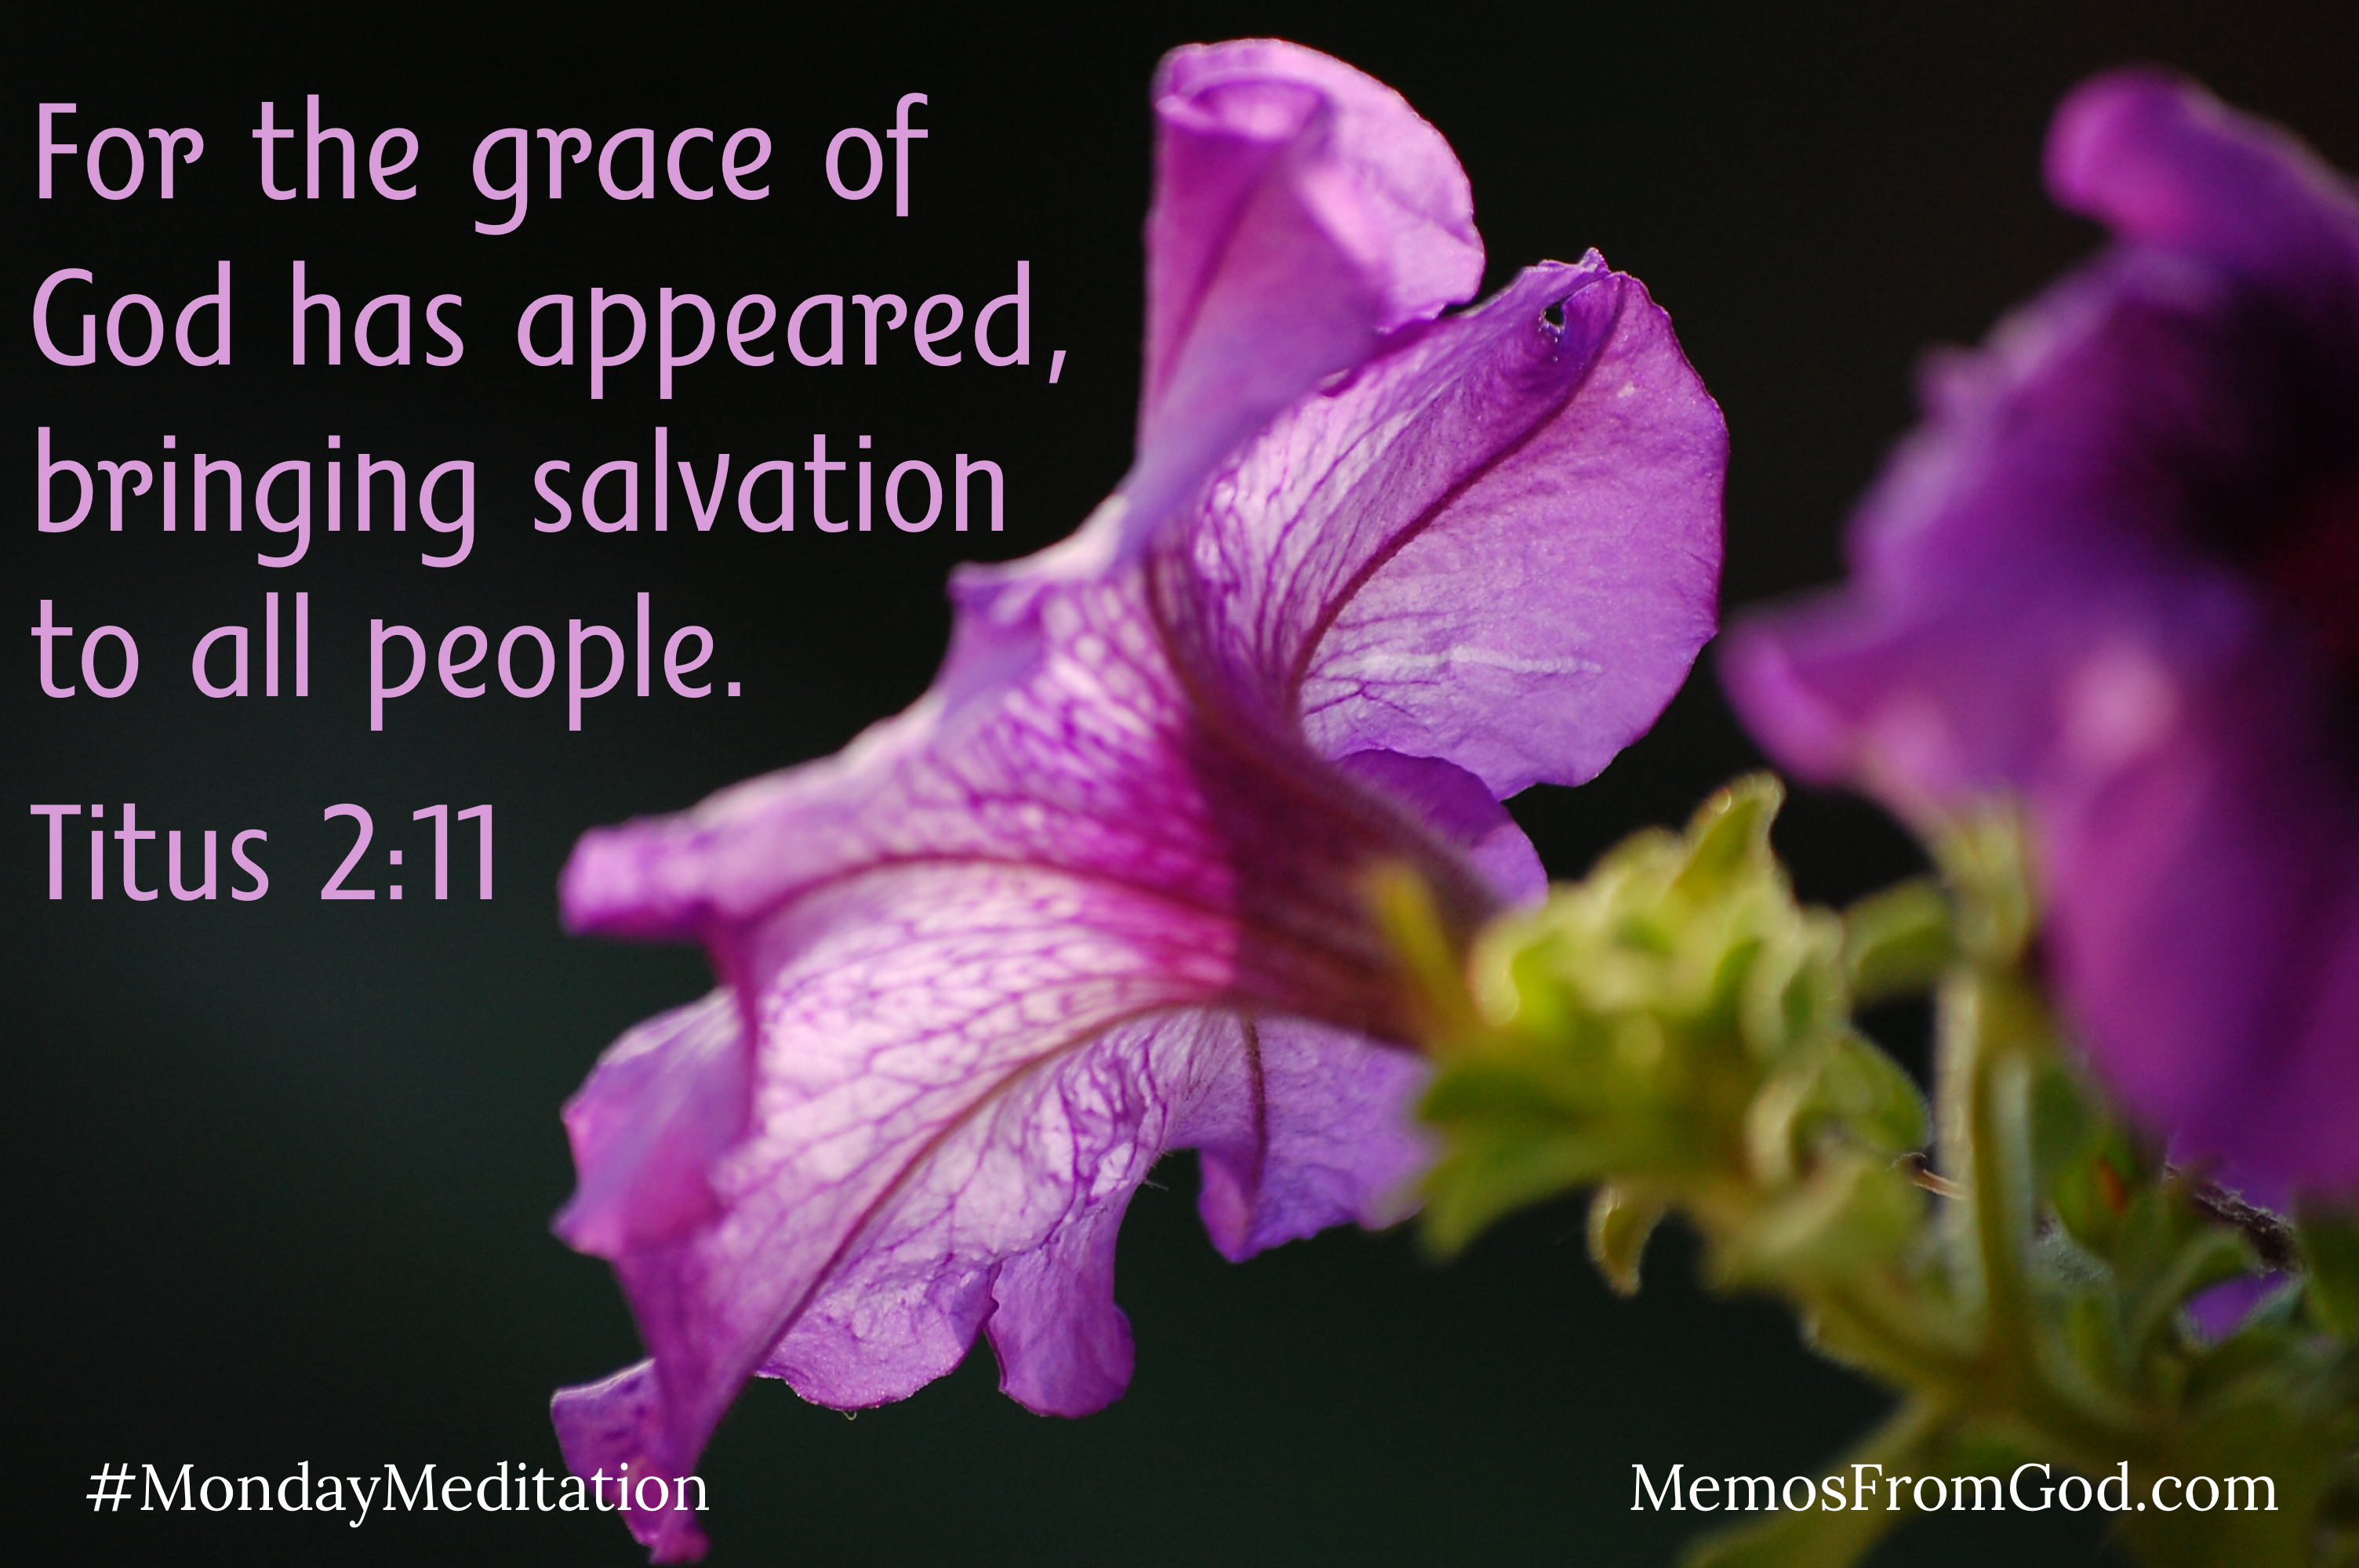 A purple petunia on a dark background. Caption: For the grace of God has appeared bringing salvation to all. Titus 2:11